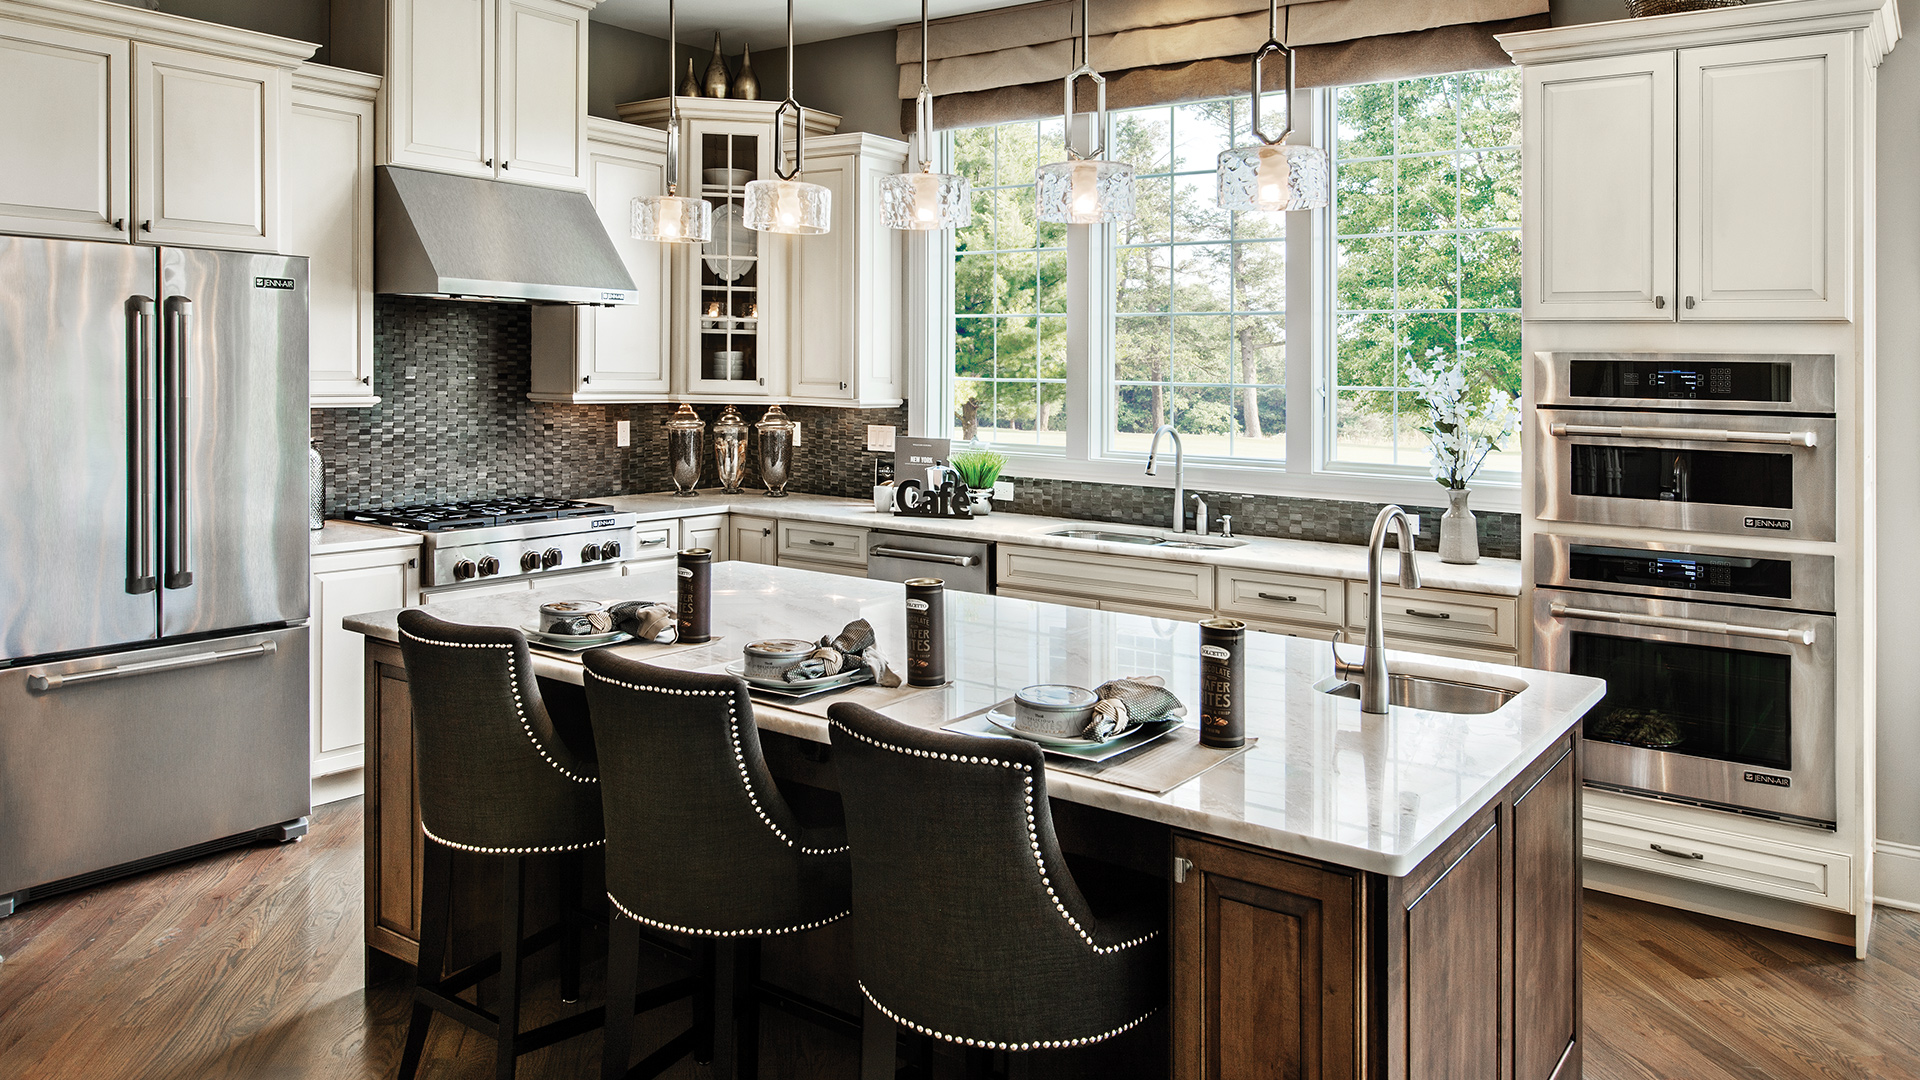 Pleasantville ny townhomes for sale enclave at pleasantville for High end appliances for sale